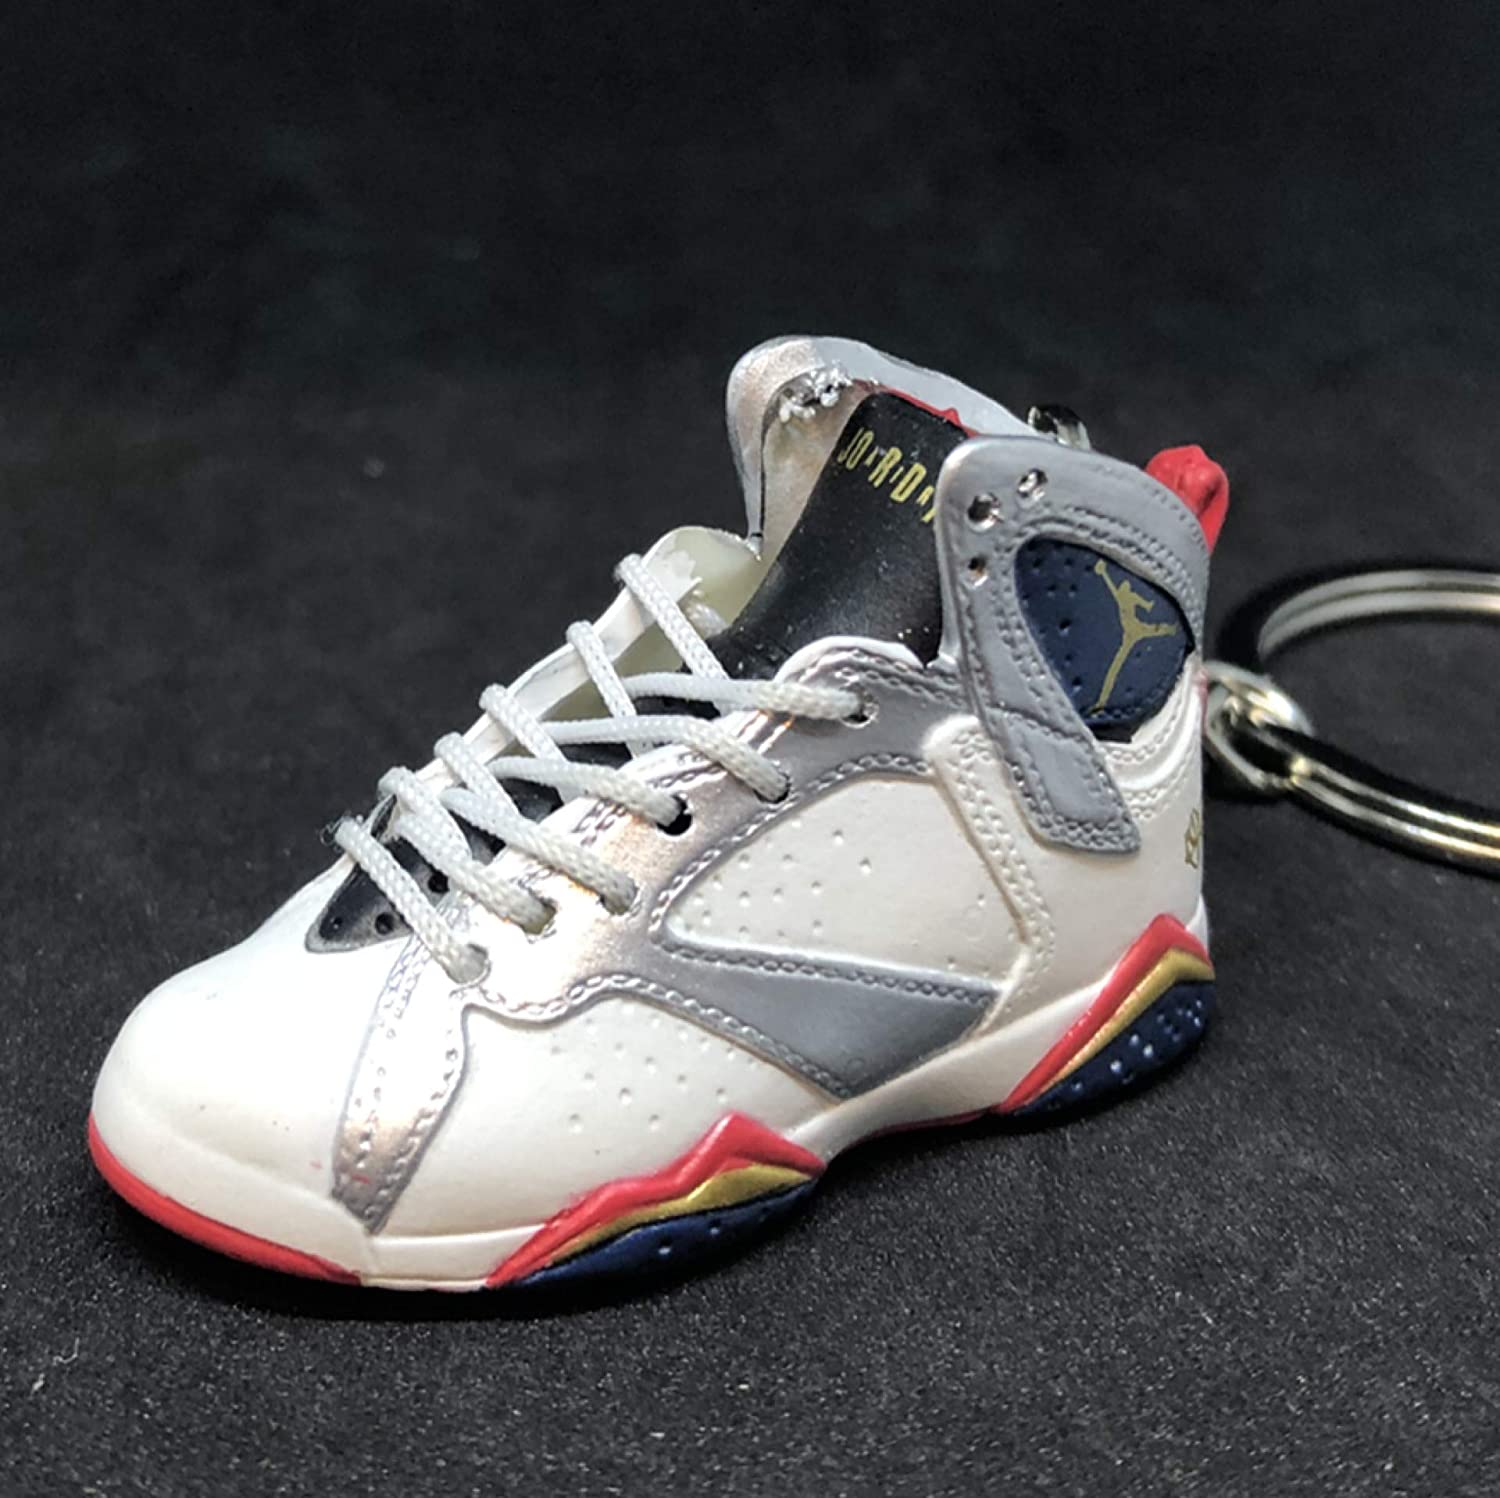 sports shoes 4ee6b e6109 Air Jordan VII 7 Retro Olympic White Gold OG Sneakers Shoes 3D Keychain  Figure